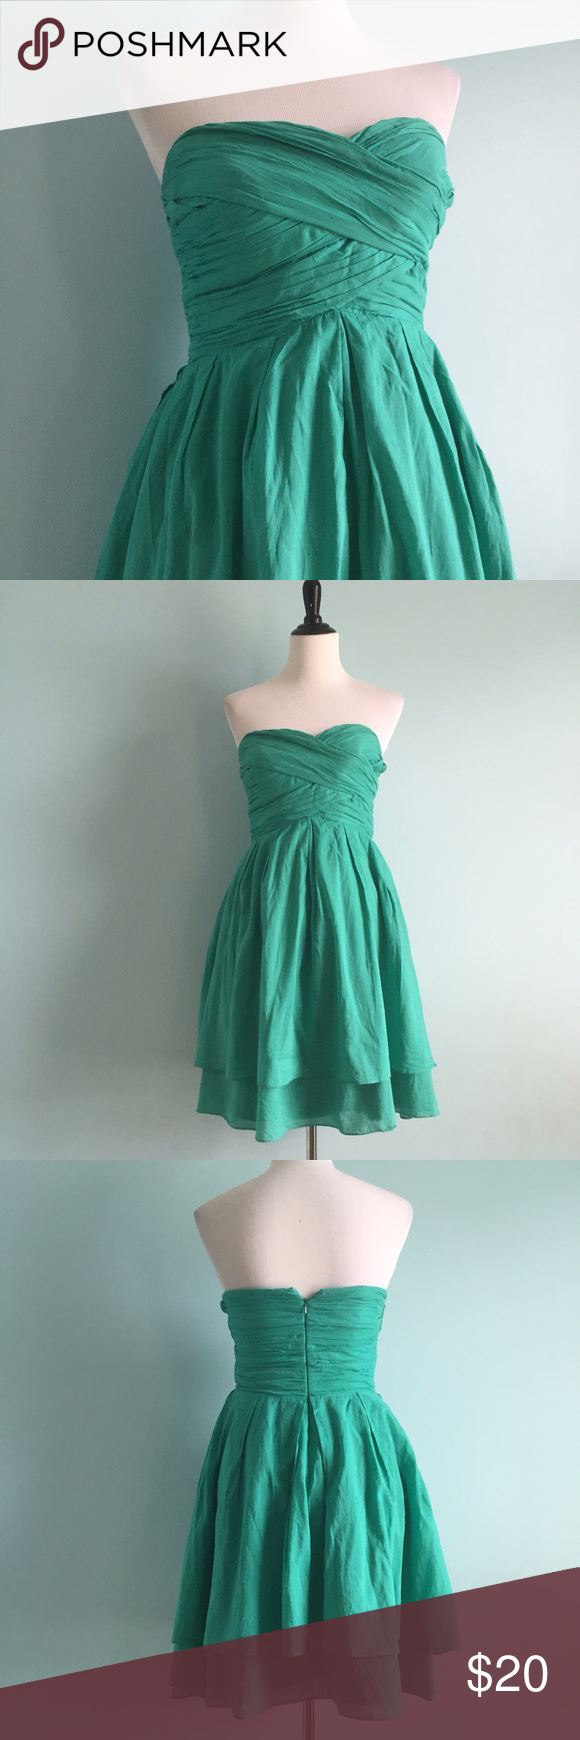 Turquoise Fit & Flare Dress Beautiful turquoise strapless dress with riches bodice and voluminous skirt. Fit & flare shape. Sweetheart neckline. Two layers of fabric on skirt. Size 8 by Jessica Simpson. Jessica Simpson Dresses Strapless